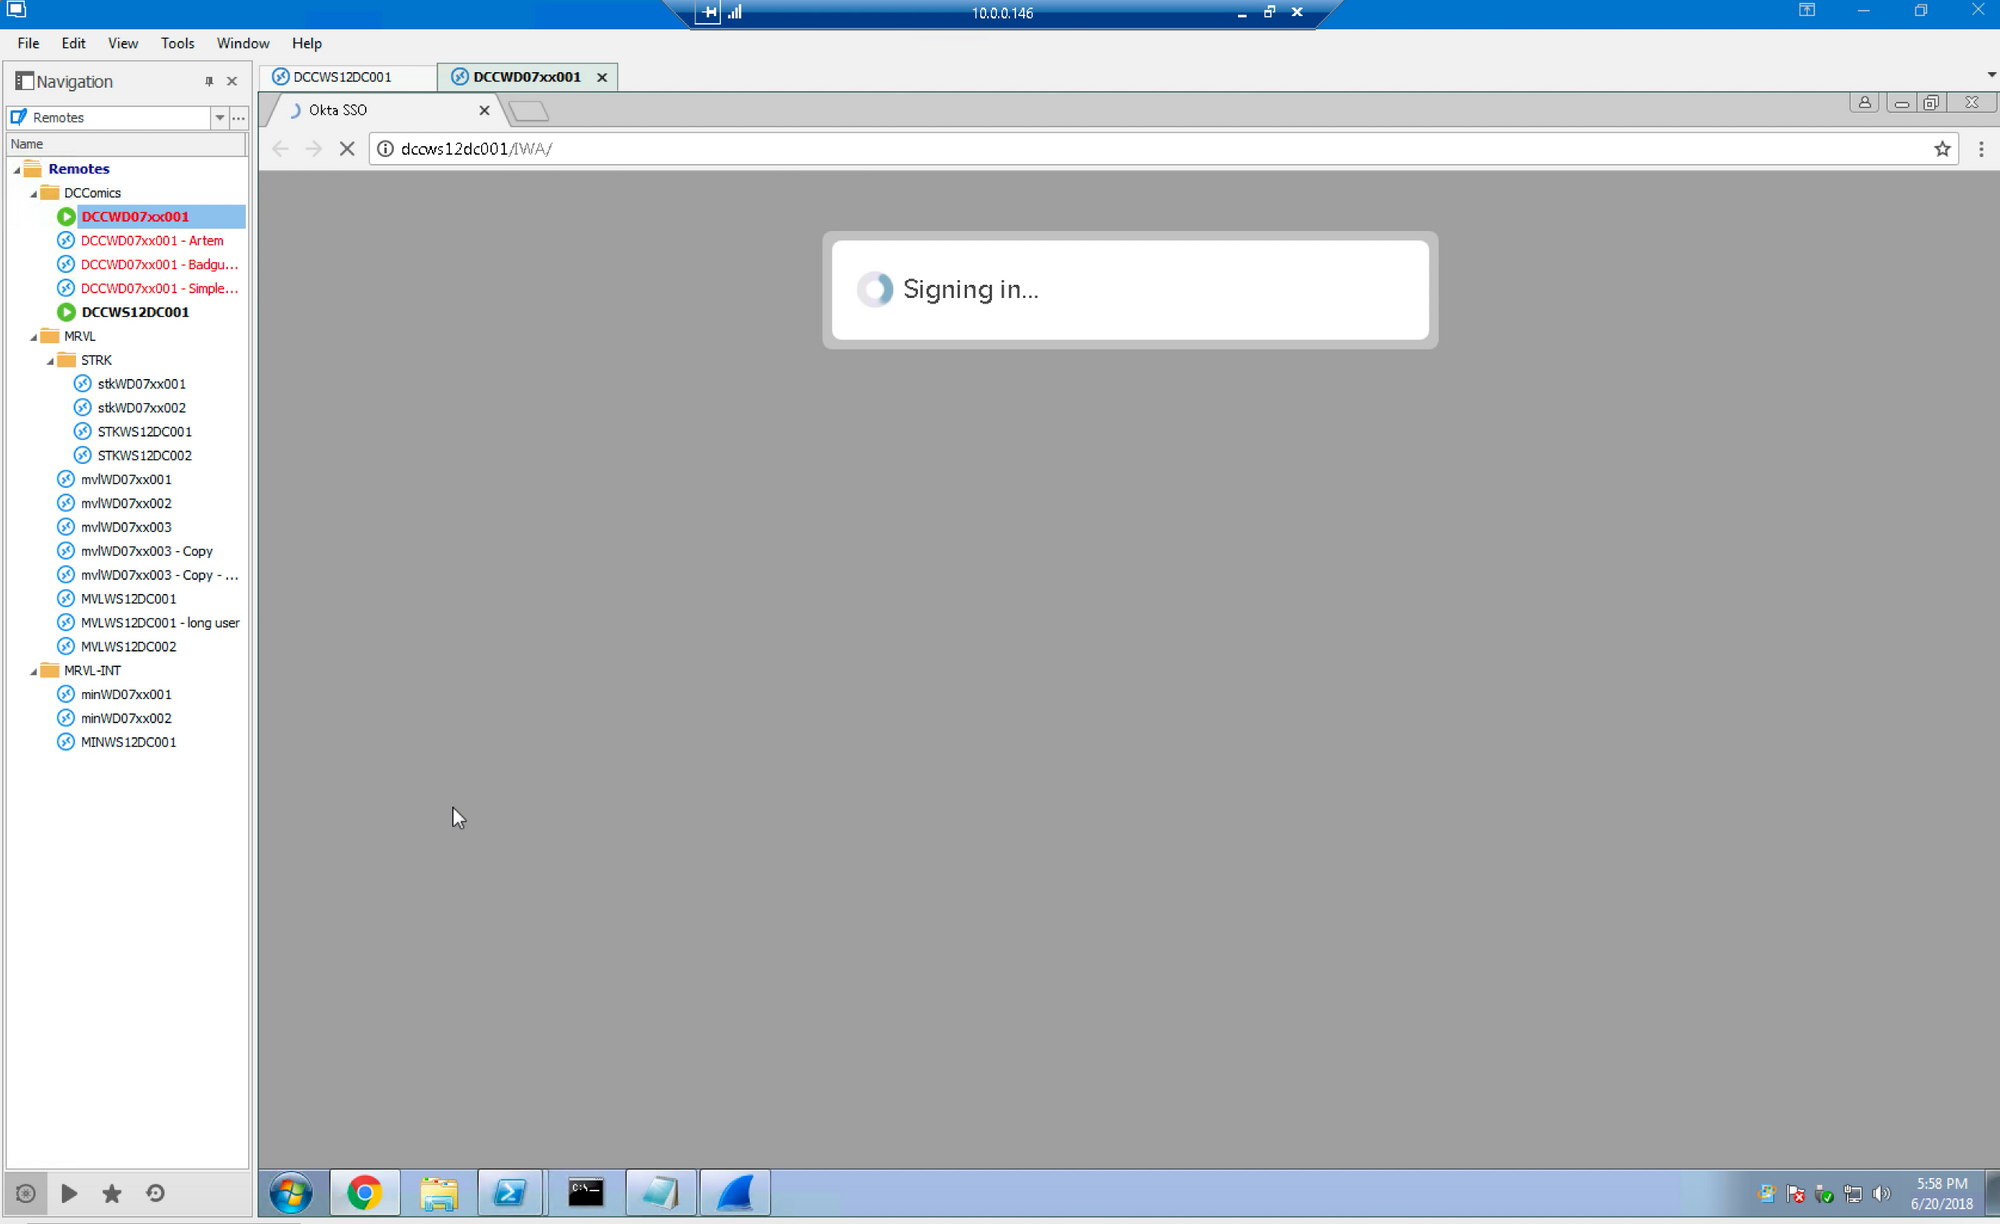 launch chrome session to sso